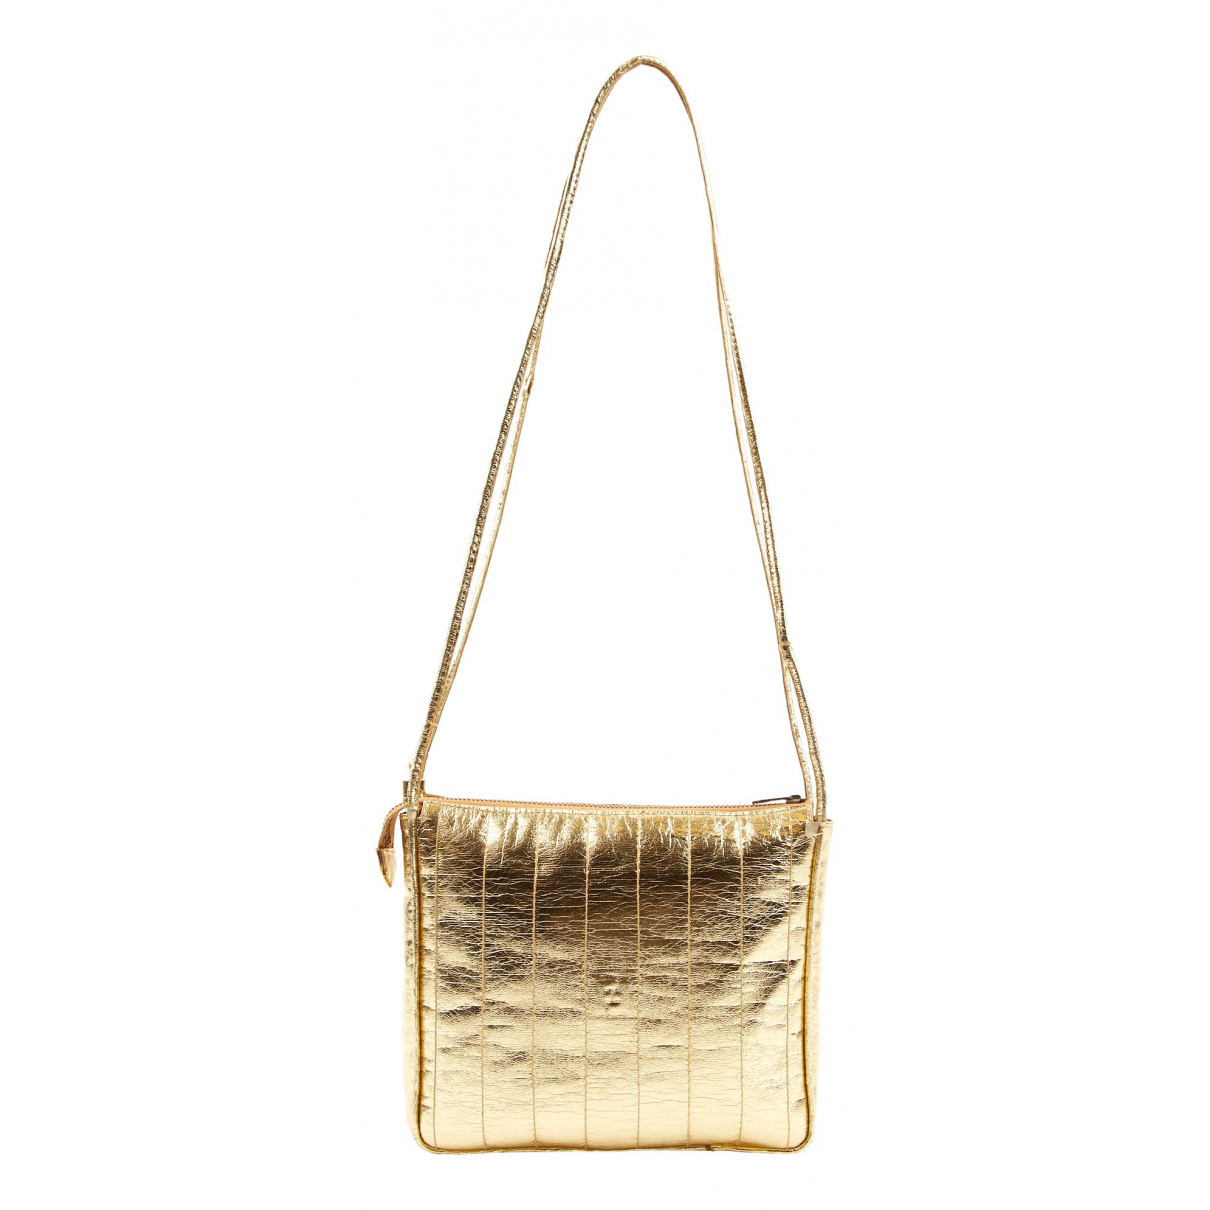 Fendi \N Gold Leather handbag for Women \N